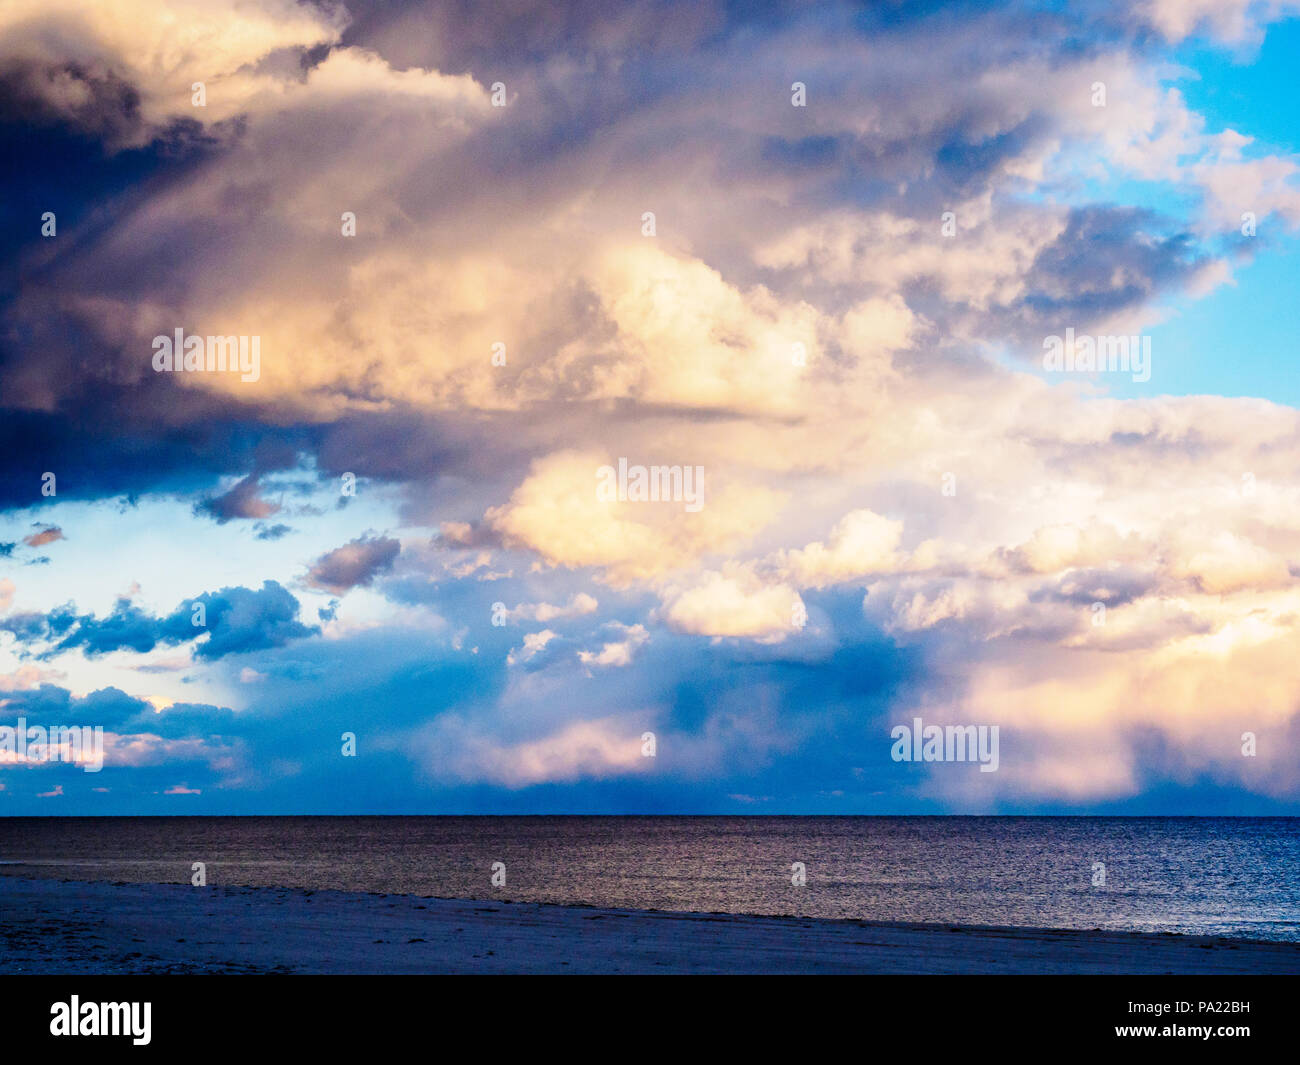 Light breaking through clouds at ocean, The Hamptons, New York, USA. - Stock Image